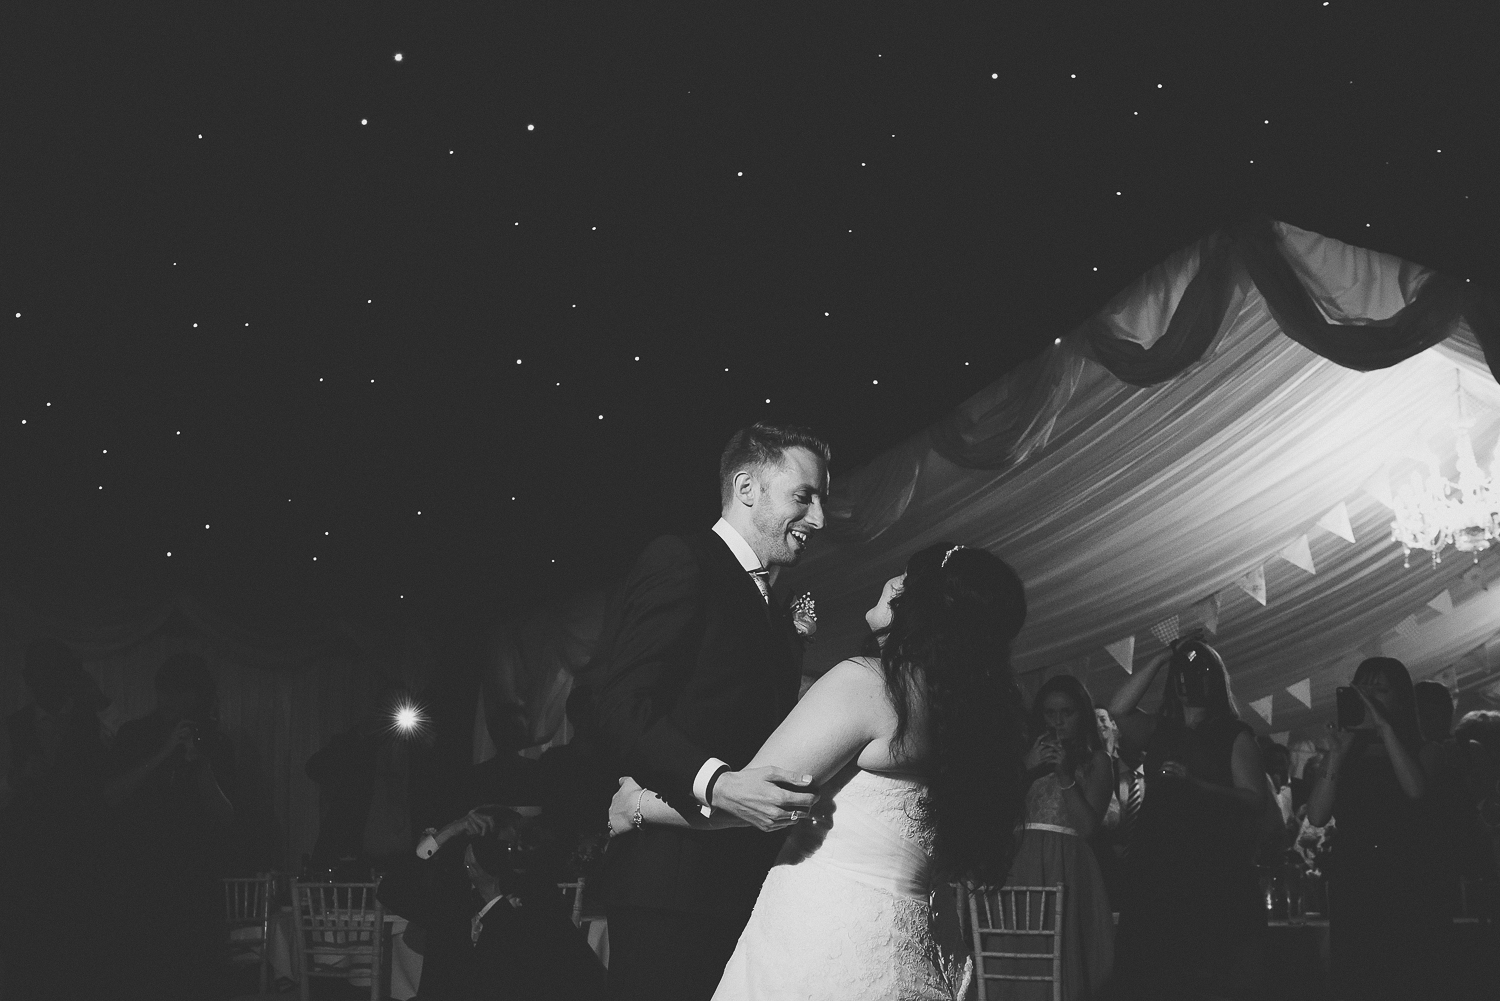 natural-documentary-wedding-photography-cardiff-south-wales-49.jpg